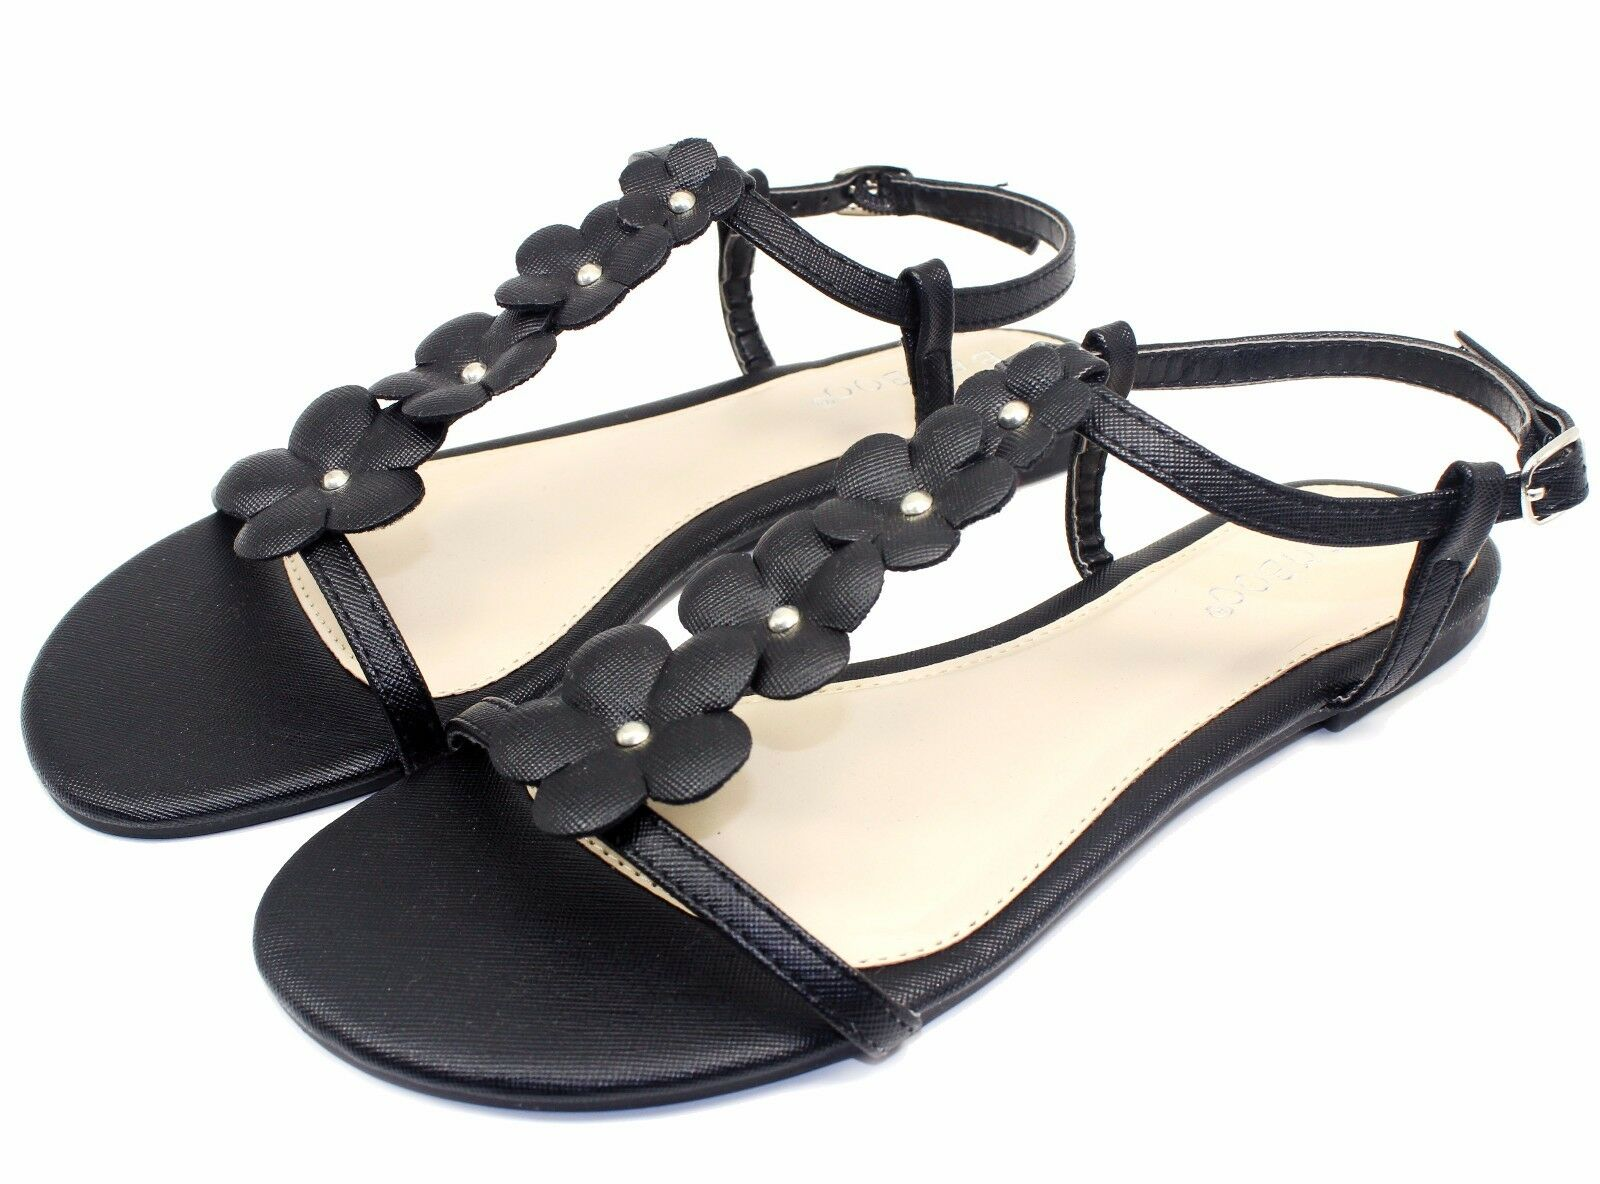 Mr/Ms CALEB-10 New Flats Sandals Buckle Gladiator Party Beach Practical Women Shoes Black 6 Practical Beach and economical Modern design Pick up at the boutique BW654 7502f7